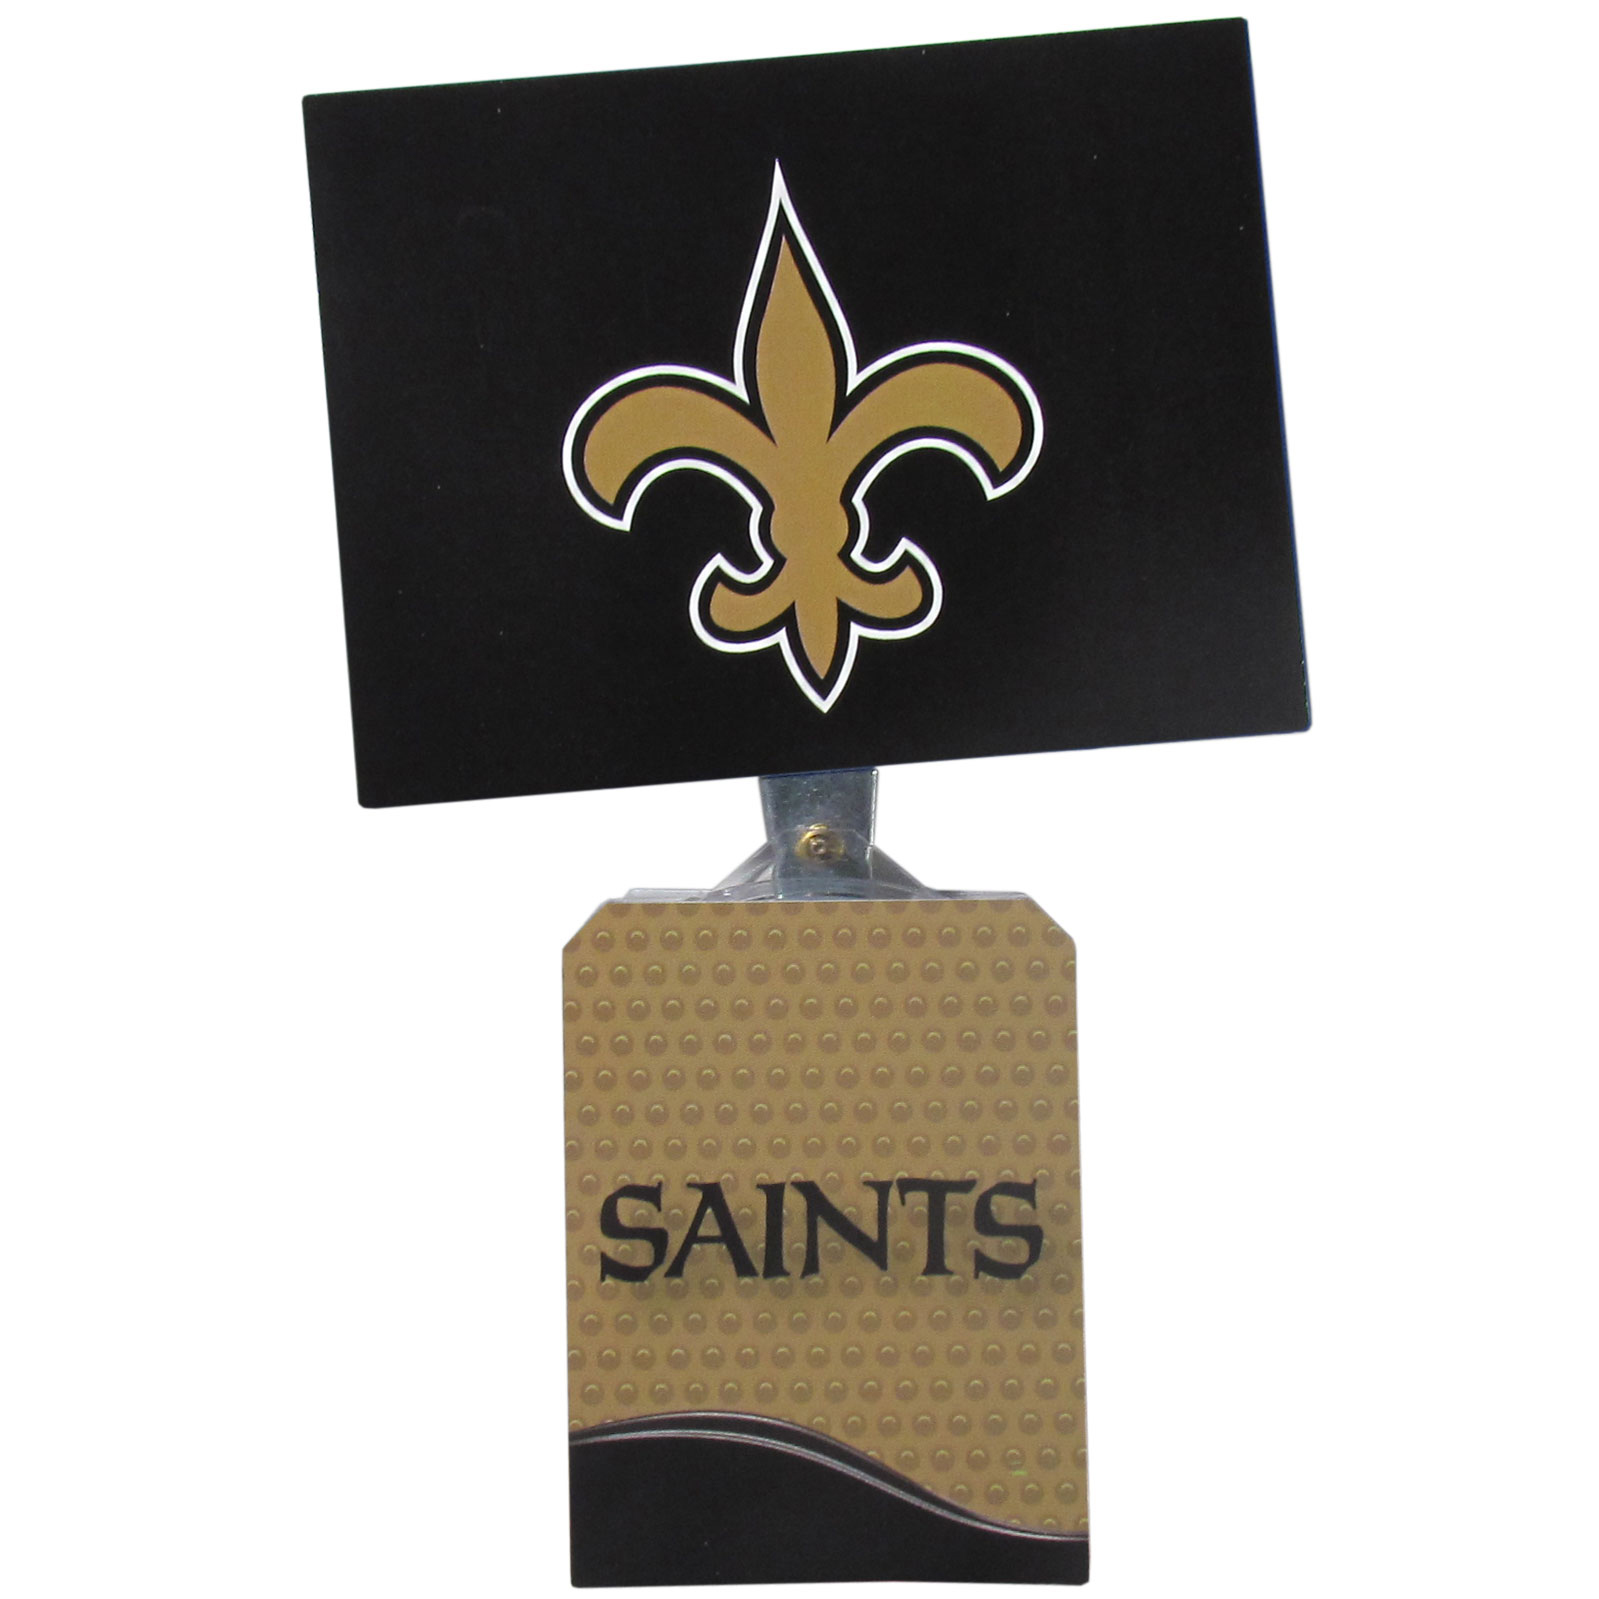 New Orleans Saints Solar Flags - Get pumped up on the way to game with Siskiyou's Chicago Bears New Orleans Saints Solar Flag that mounts to your dashboard or window. The in-motion solar flag also doubles as decoration for your tailgate or homegate! The base of the flag is 3 inches tall and the flag is 4 inches making the entire in-motion solar flag stand at 7 inches tall. Keep your spirit moving with your favorite team's Solar Flag.